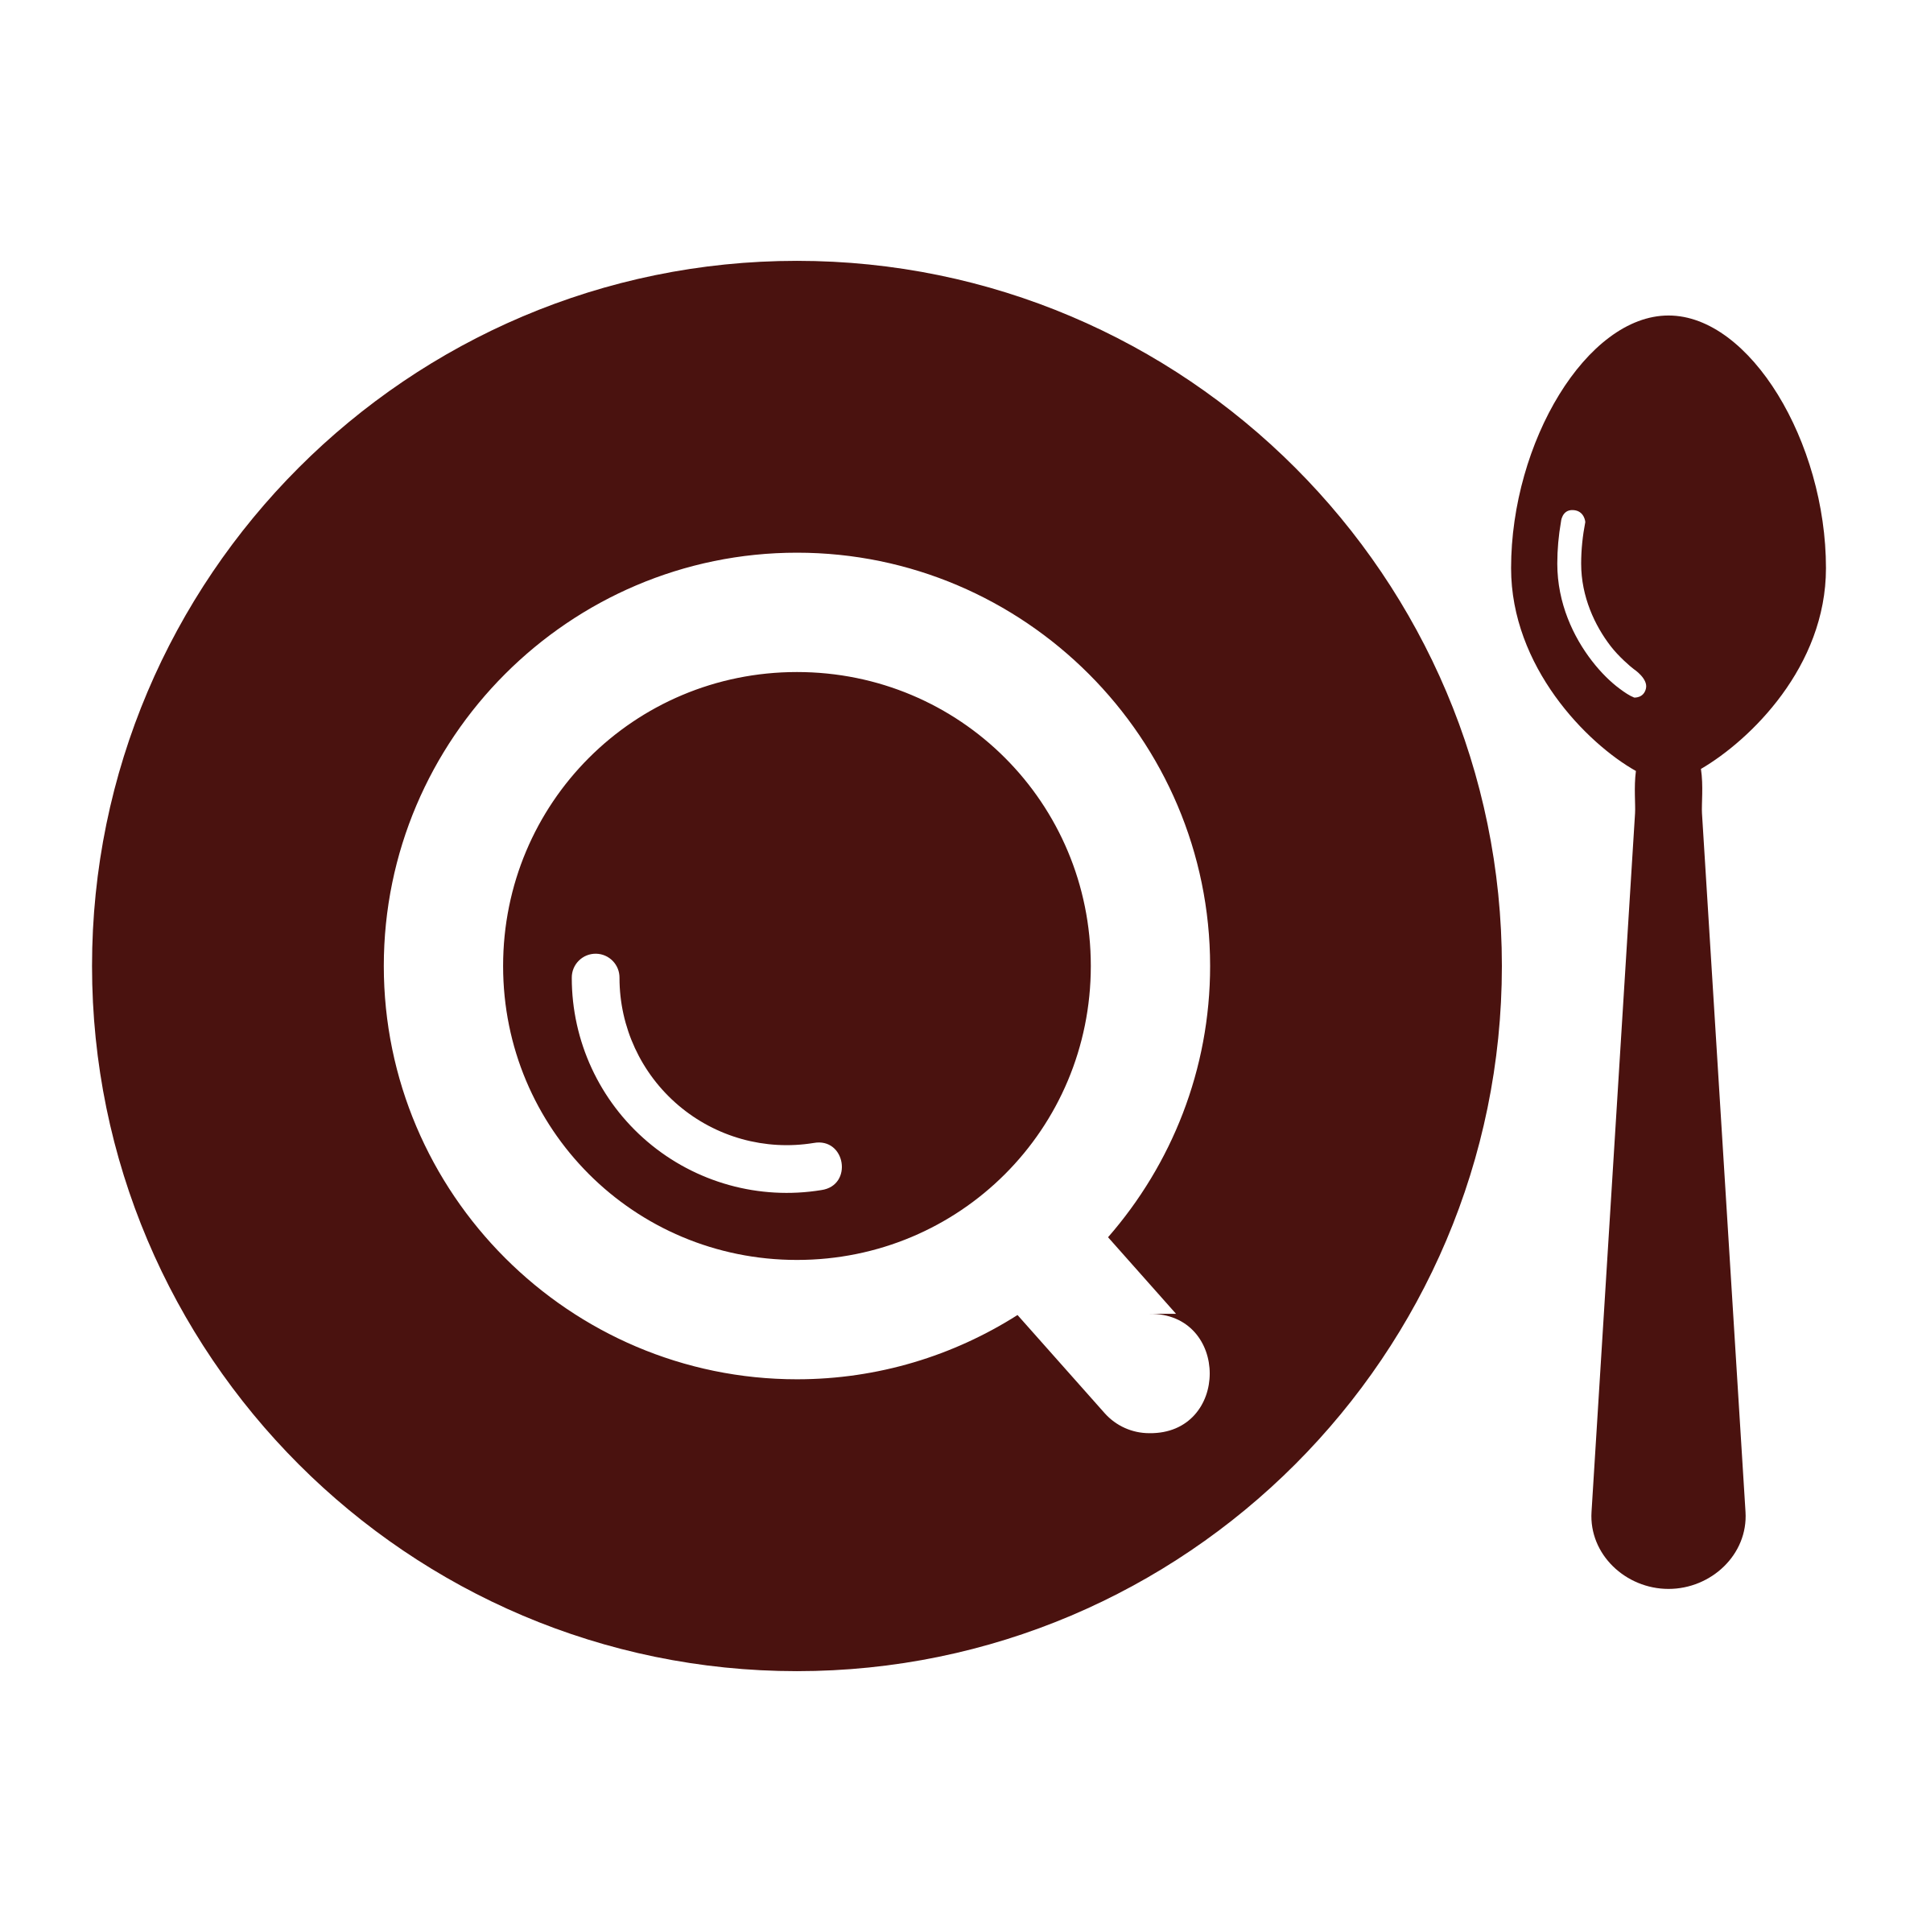 Coffee Cup Top Flat by gnokii